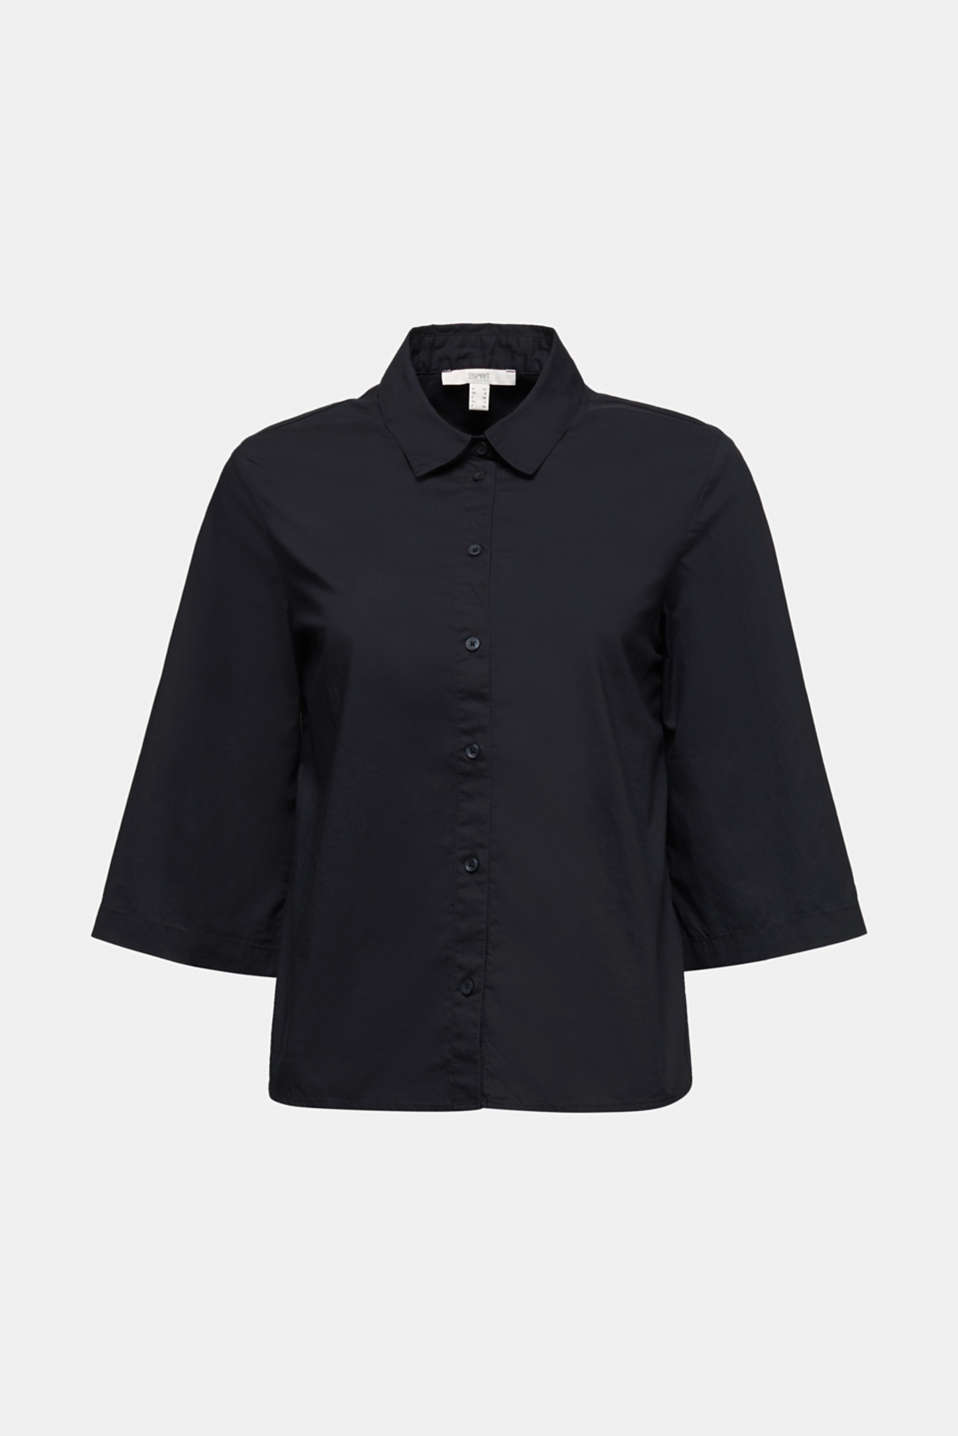 Blouse with 3/4-length sleeves, cotton, BLACK, detail image number 6